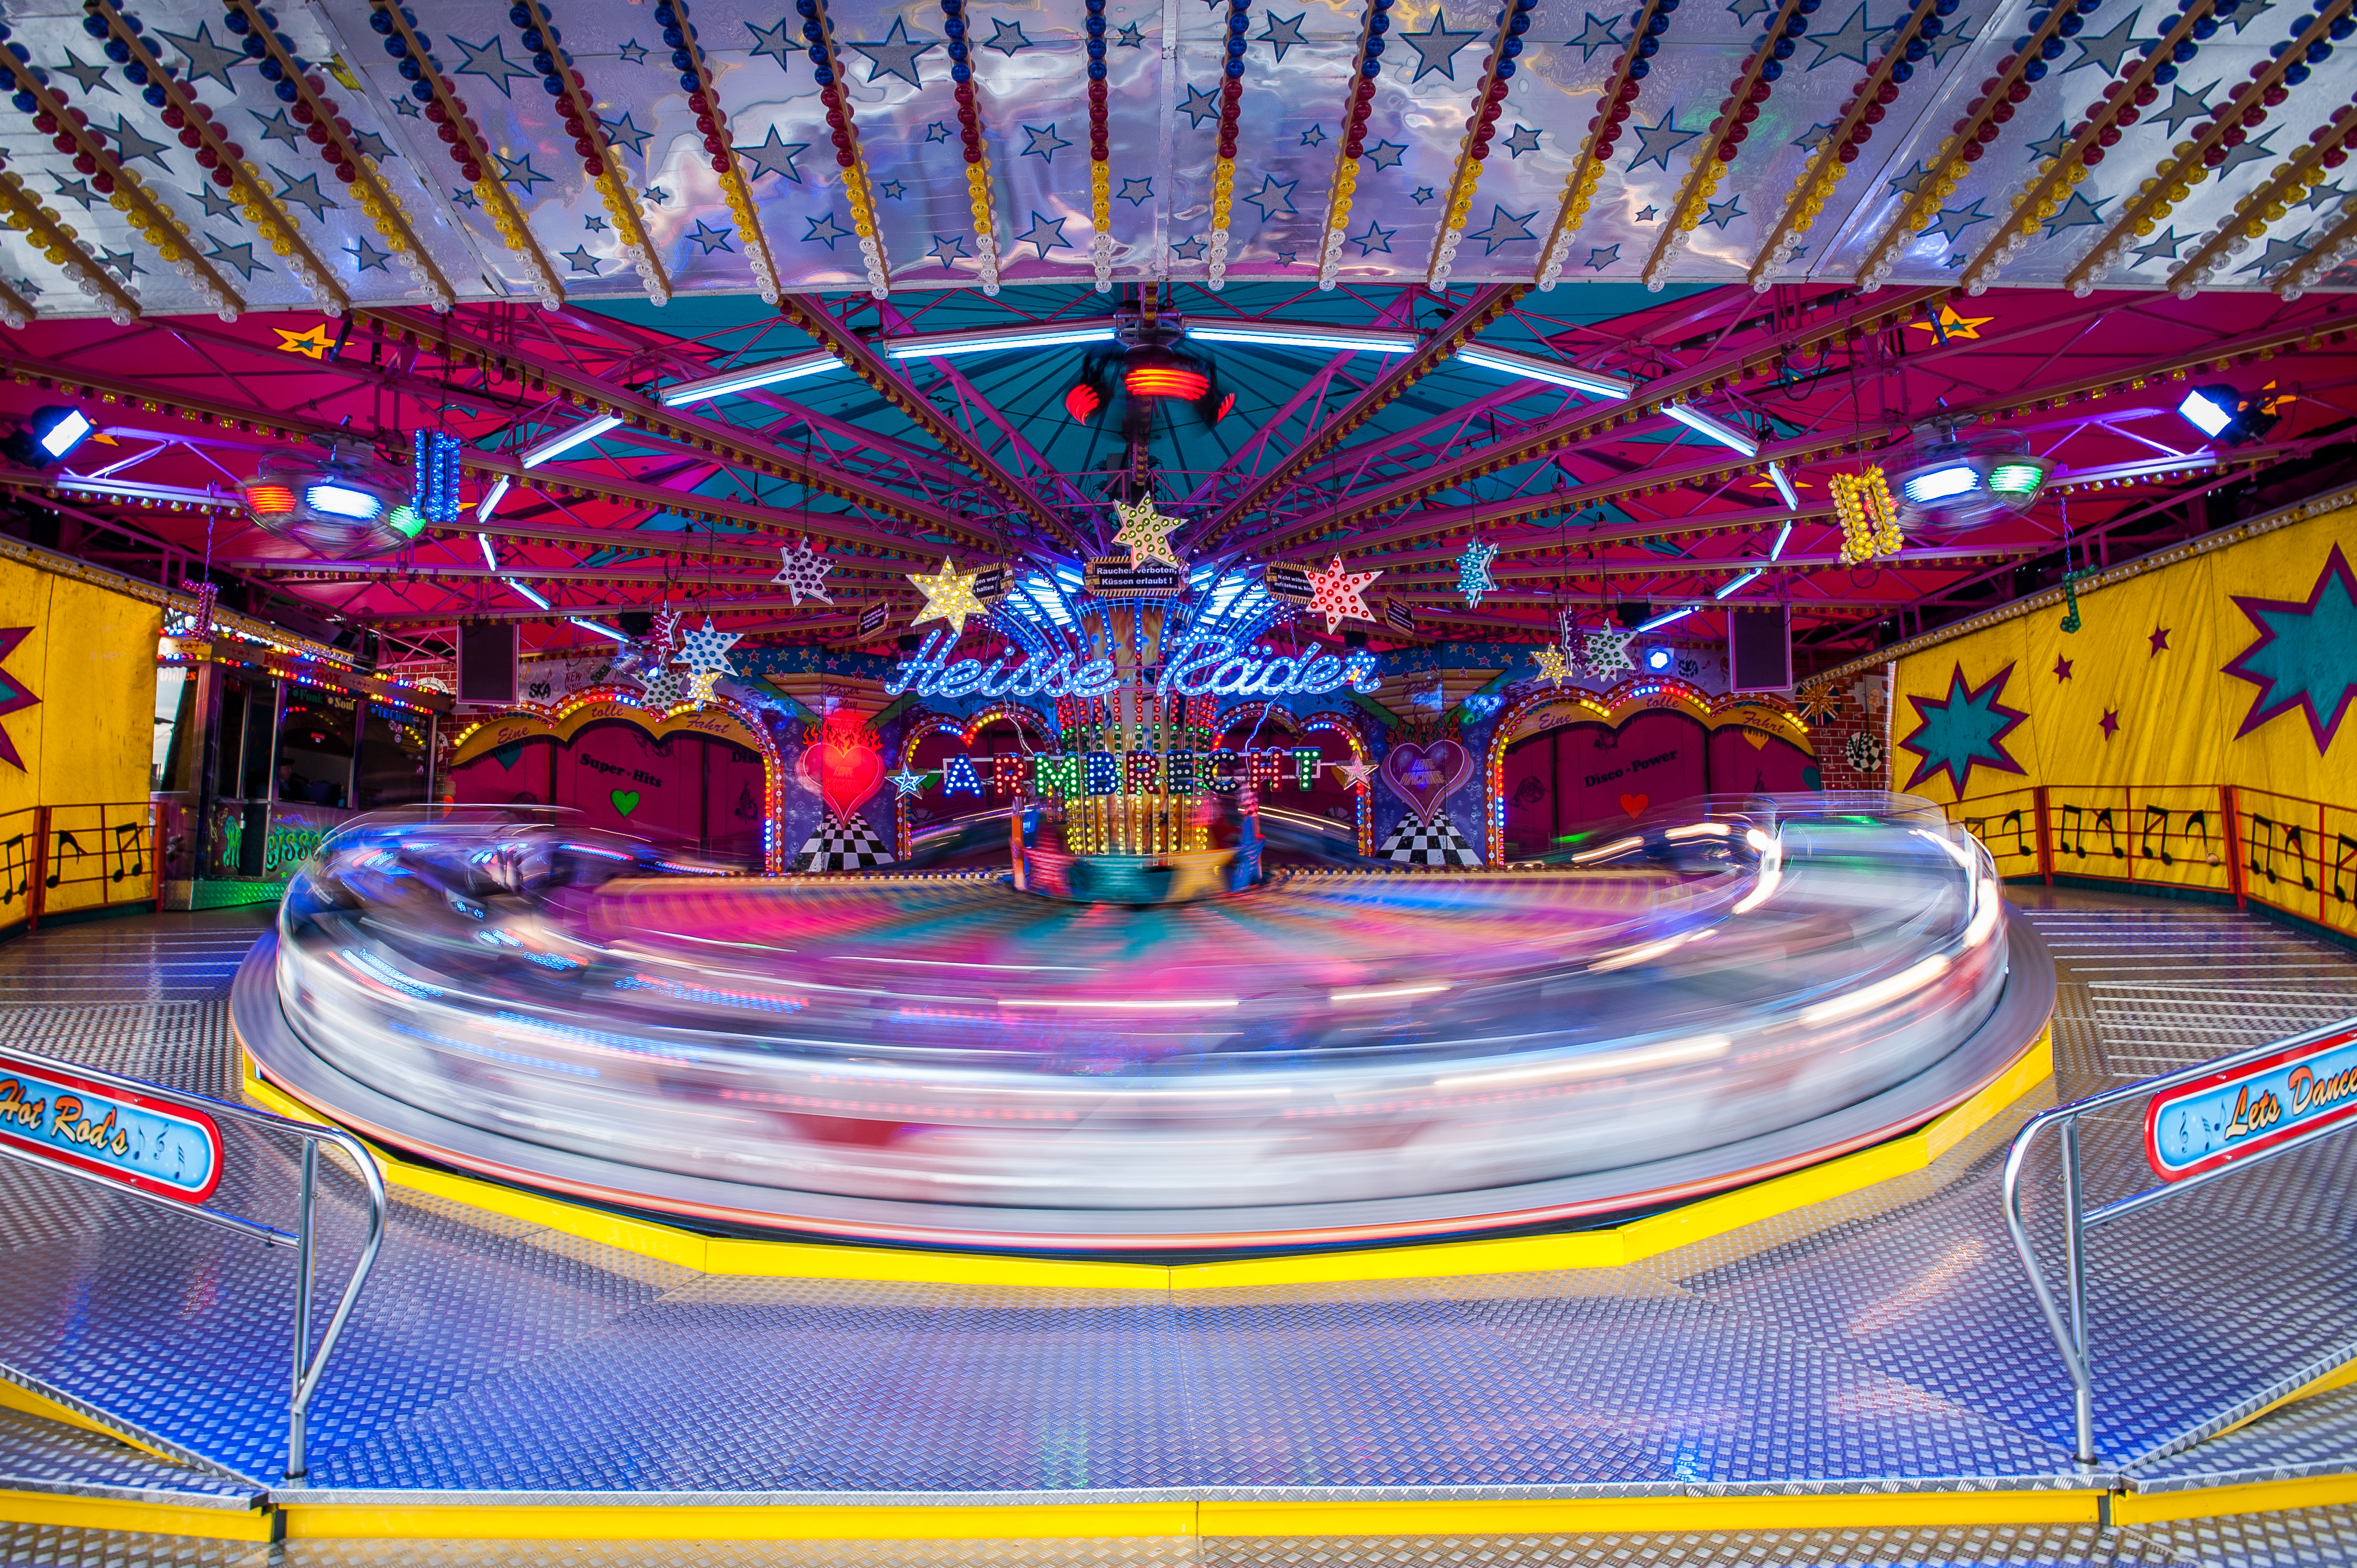 Timelapse Photography of Carousel